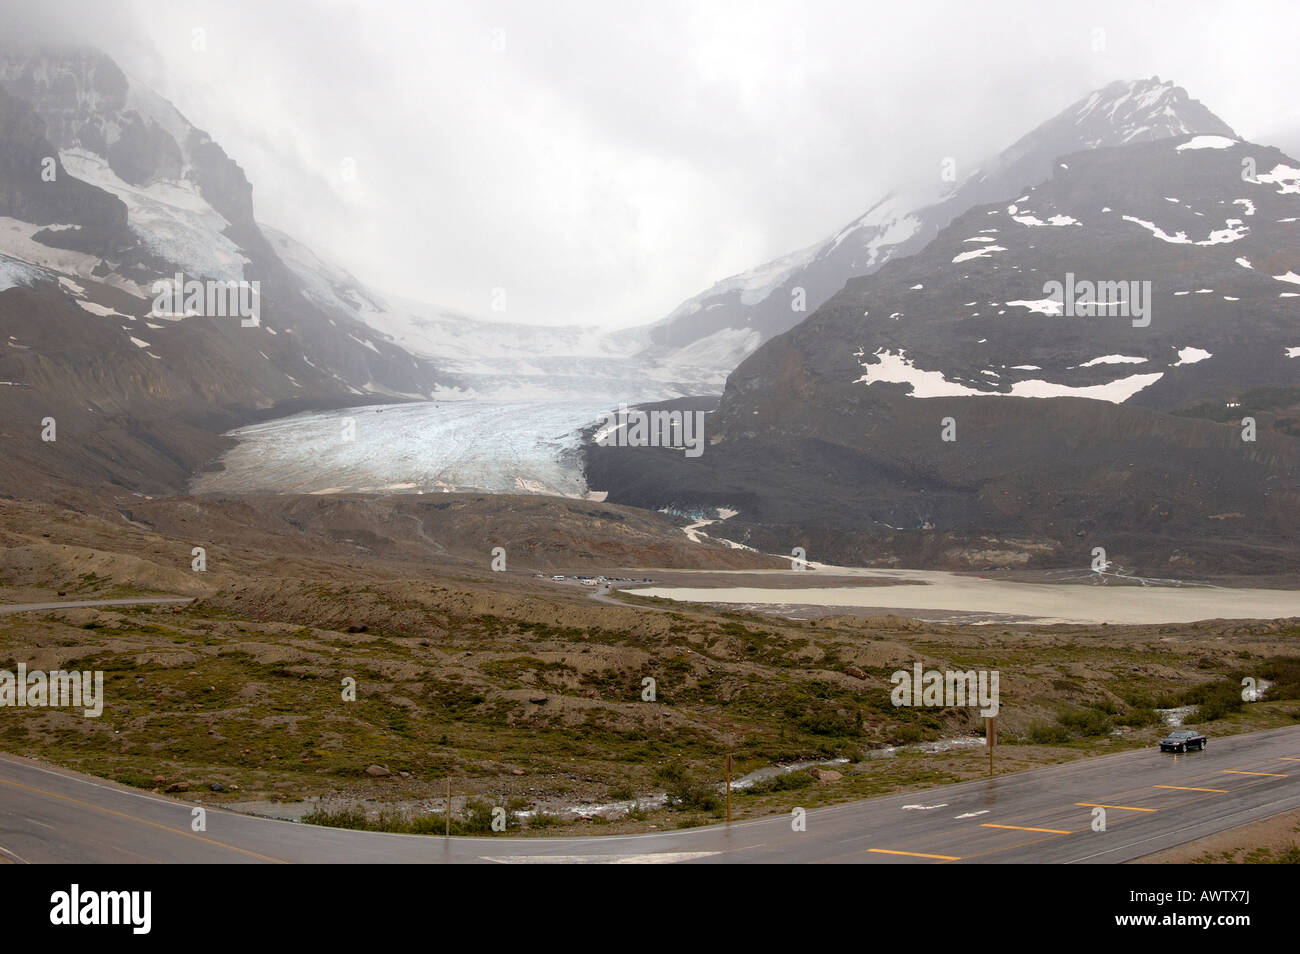 Columbia Icefields and the Athabasca Glacier in wet and windy weather conditions. Stock Photo